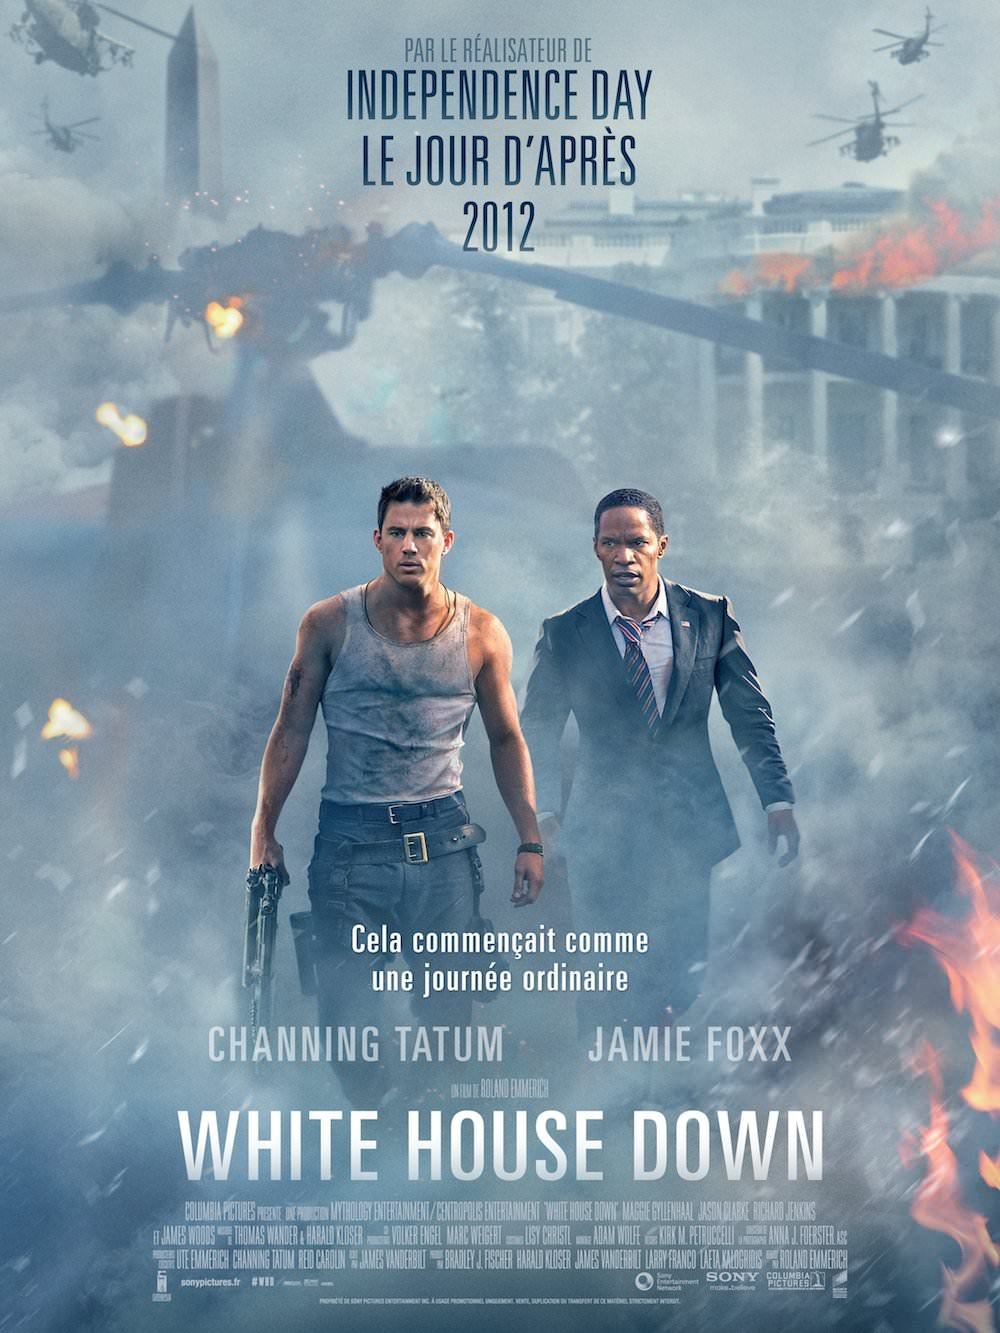 White house down emmerich